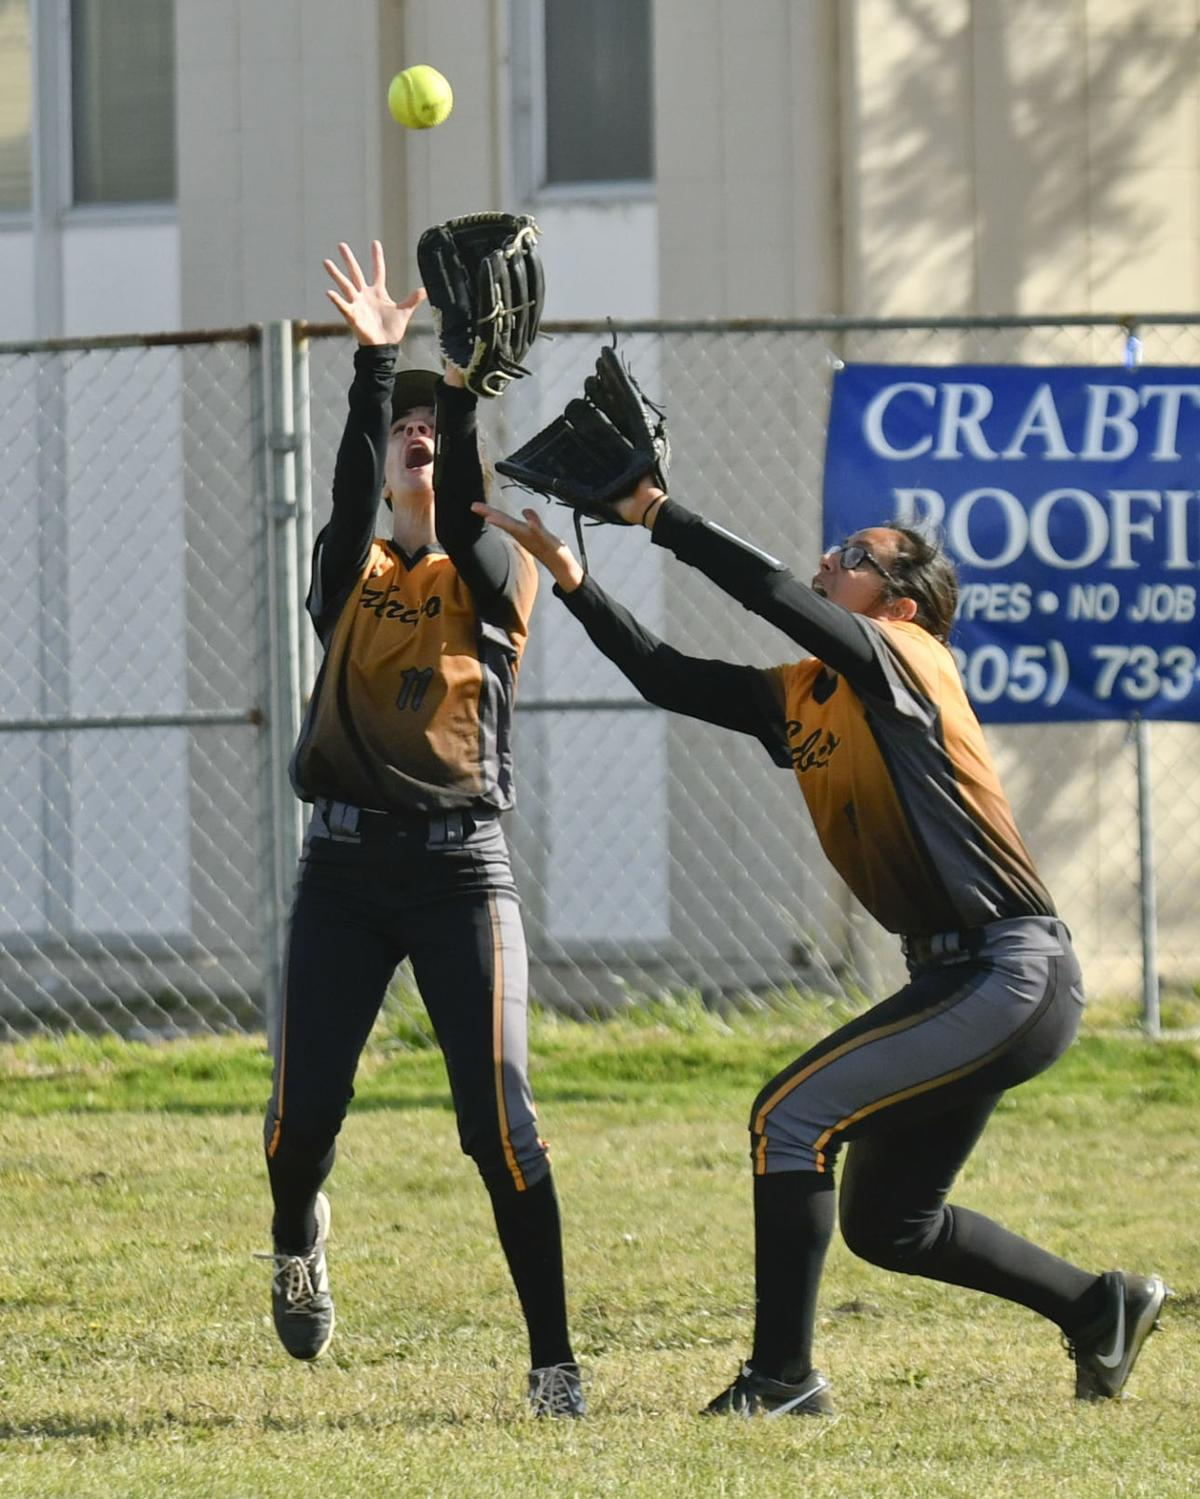 050818 CHS LHS softball 02.jpg